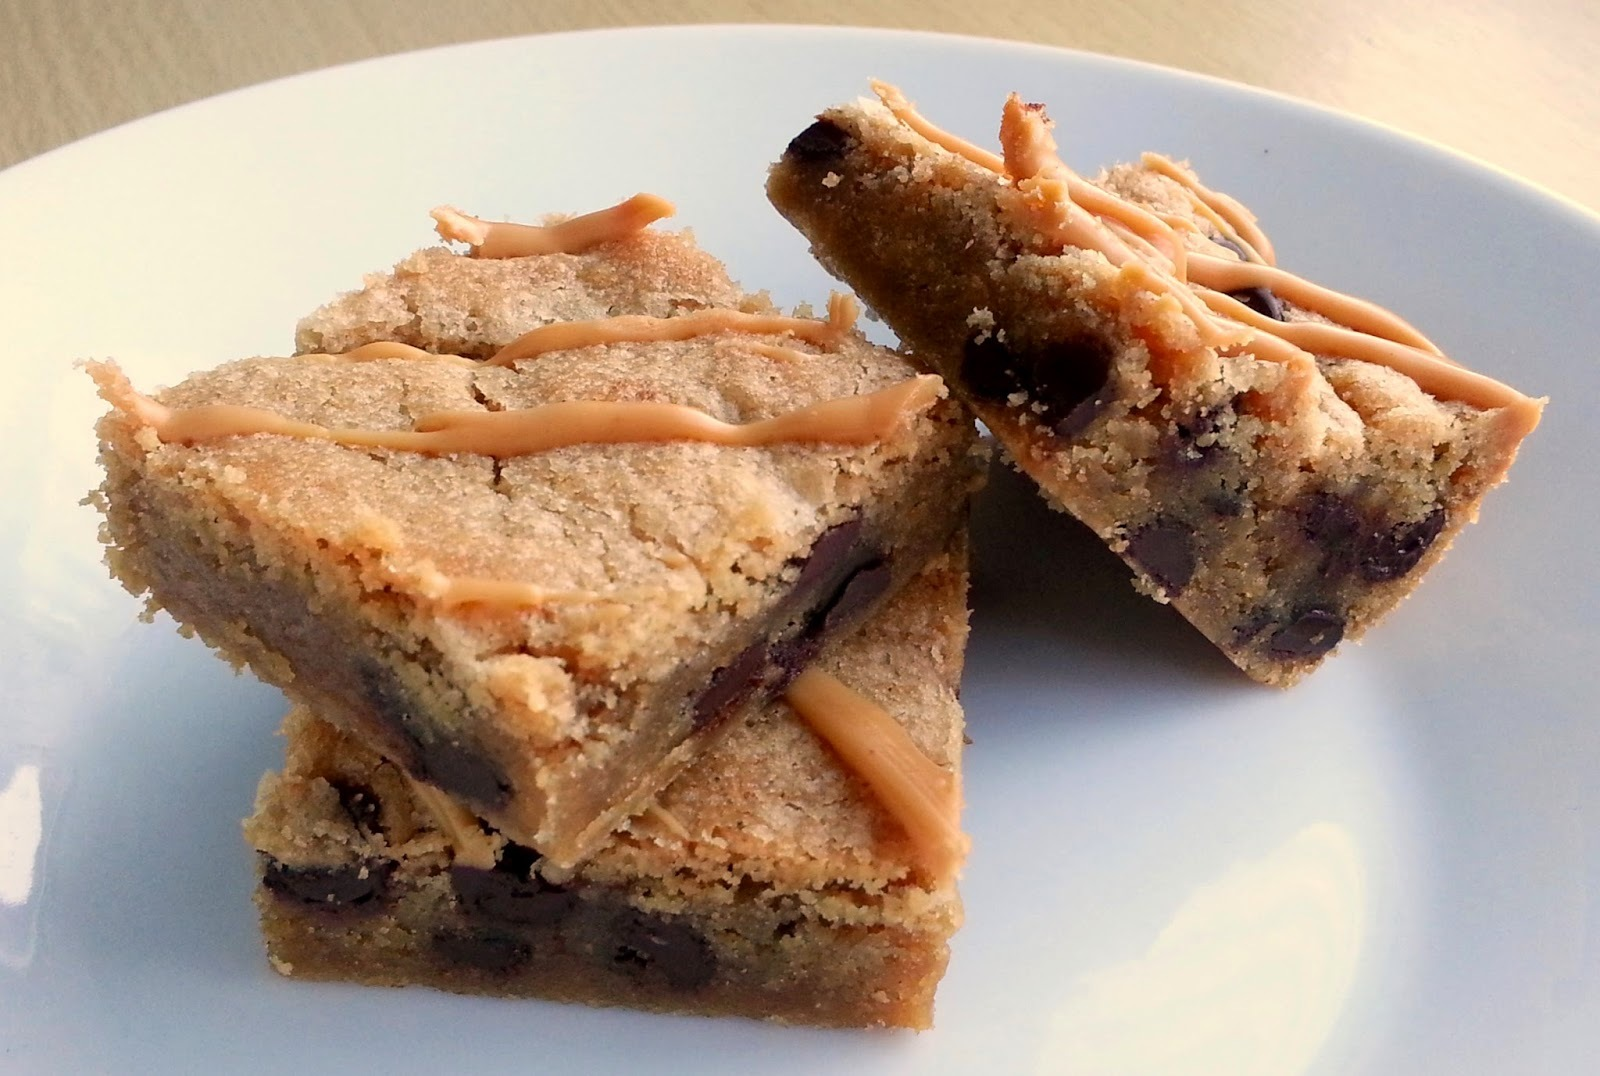 Peanut butter and chocolate chip cookie bars